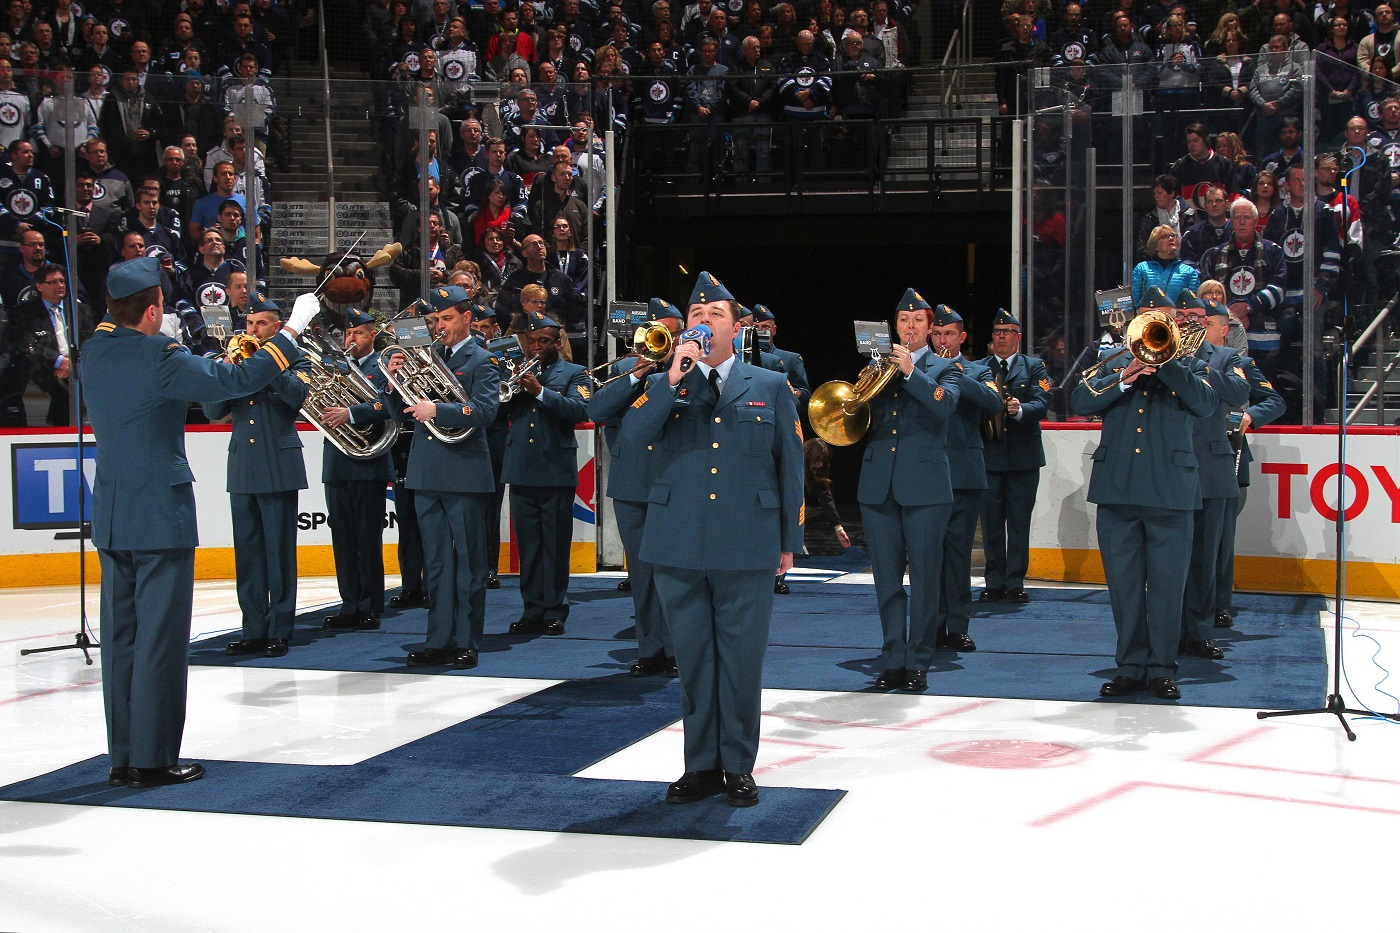 The RCAF Band performs our national anthem for the Winnipeg Jets Military Appreciation Day.